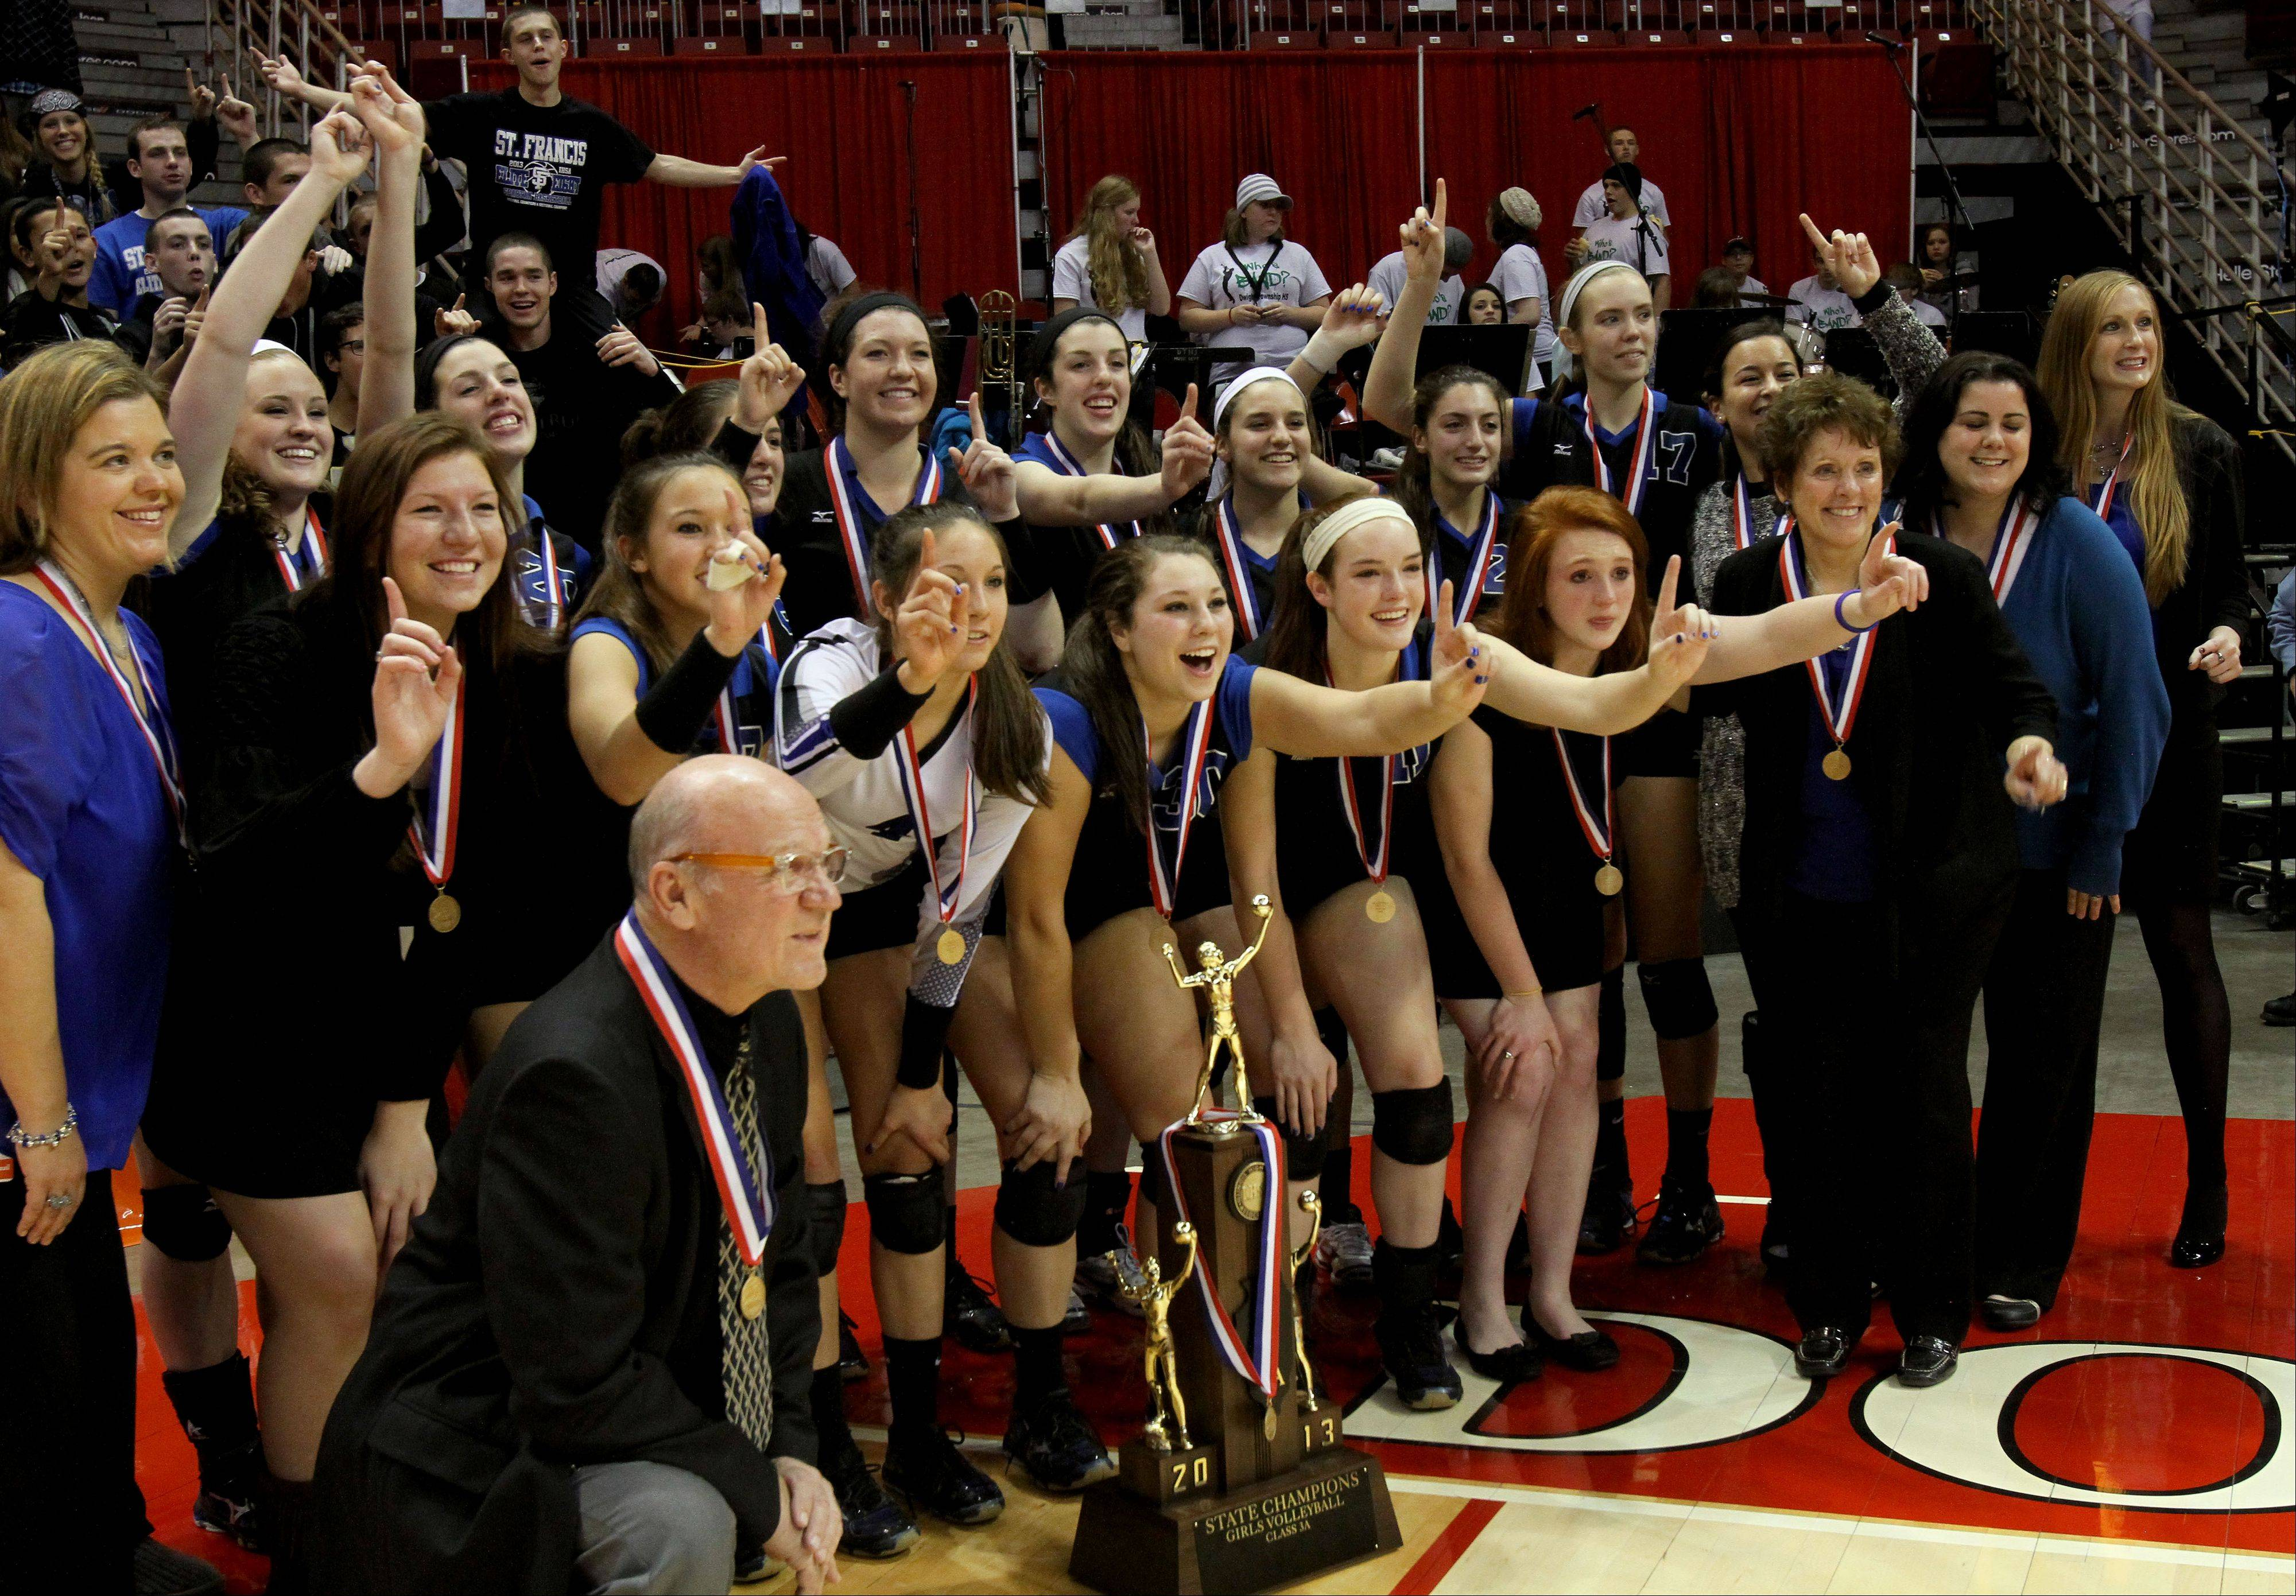 St. Francis poses with their trophy after beating LaSalle-Peru in the Class 3A championship girls volleyball match on Saturday in Normal.